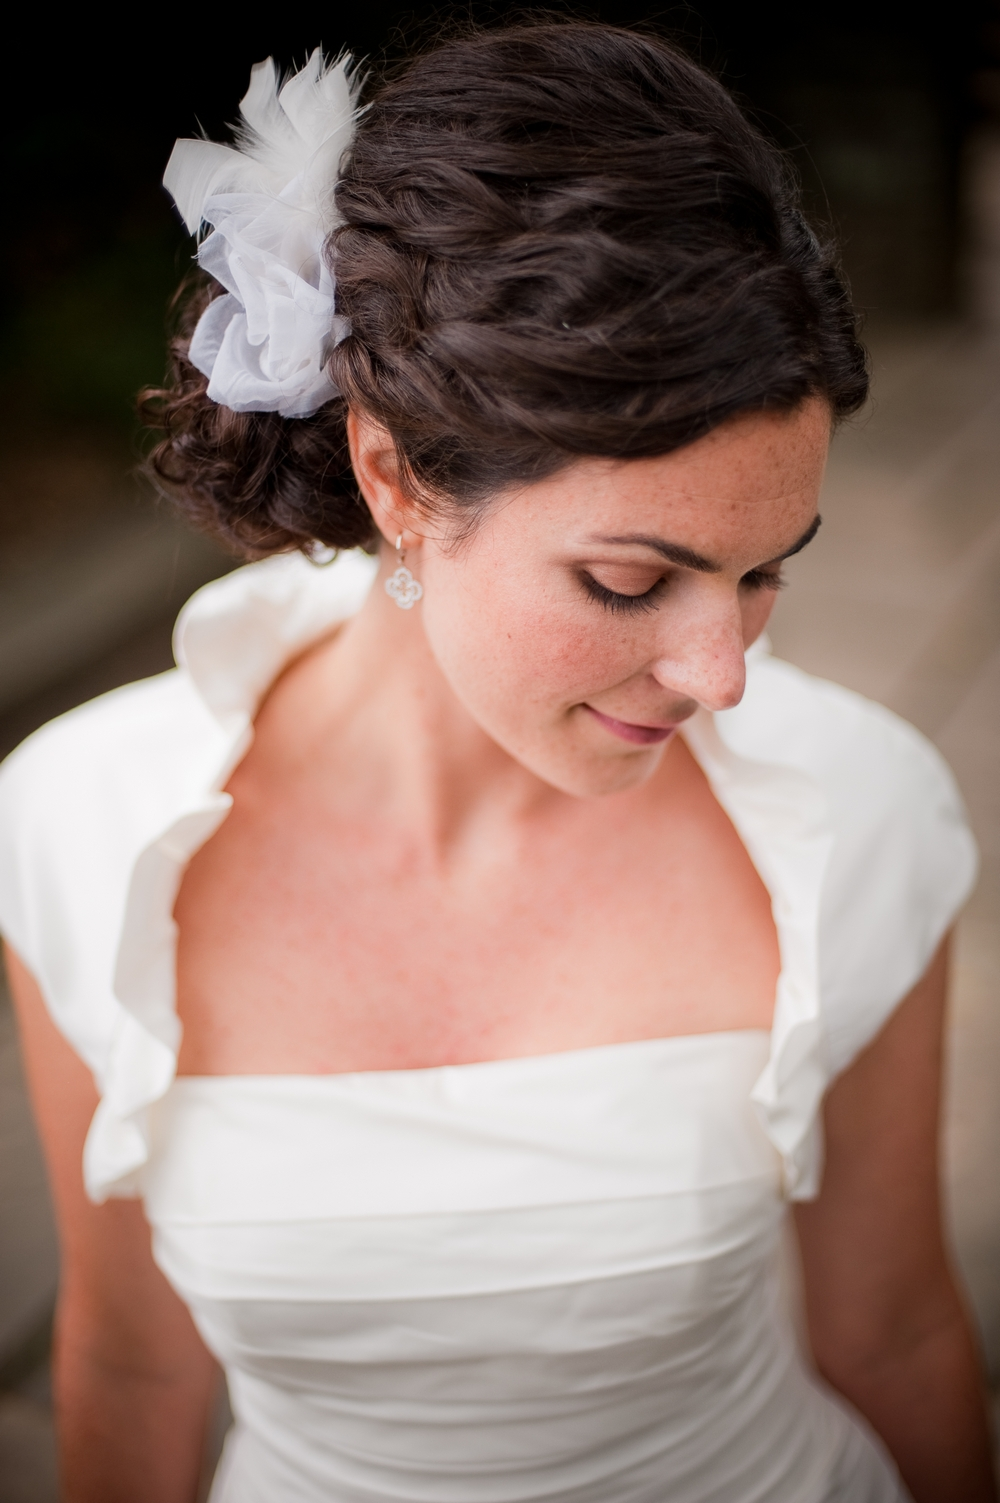 wedding-hairstyles-updo-classic-curly-updo-with-flower-in-hair